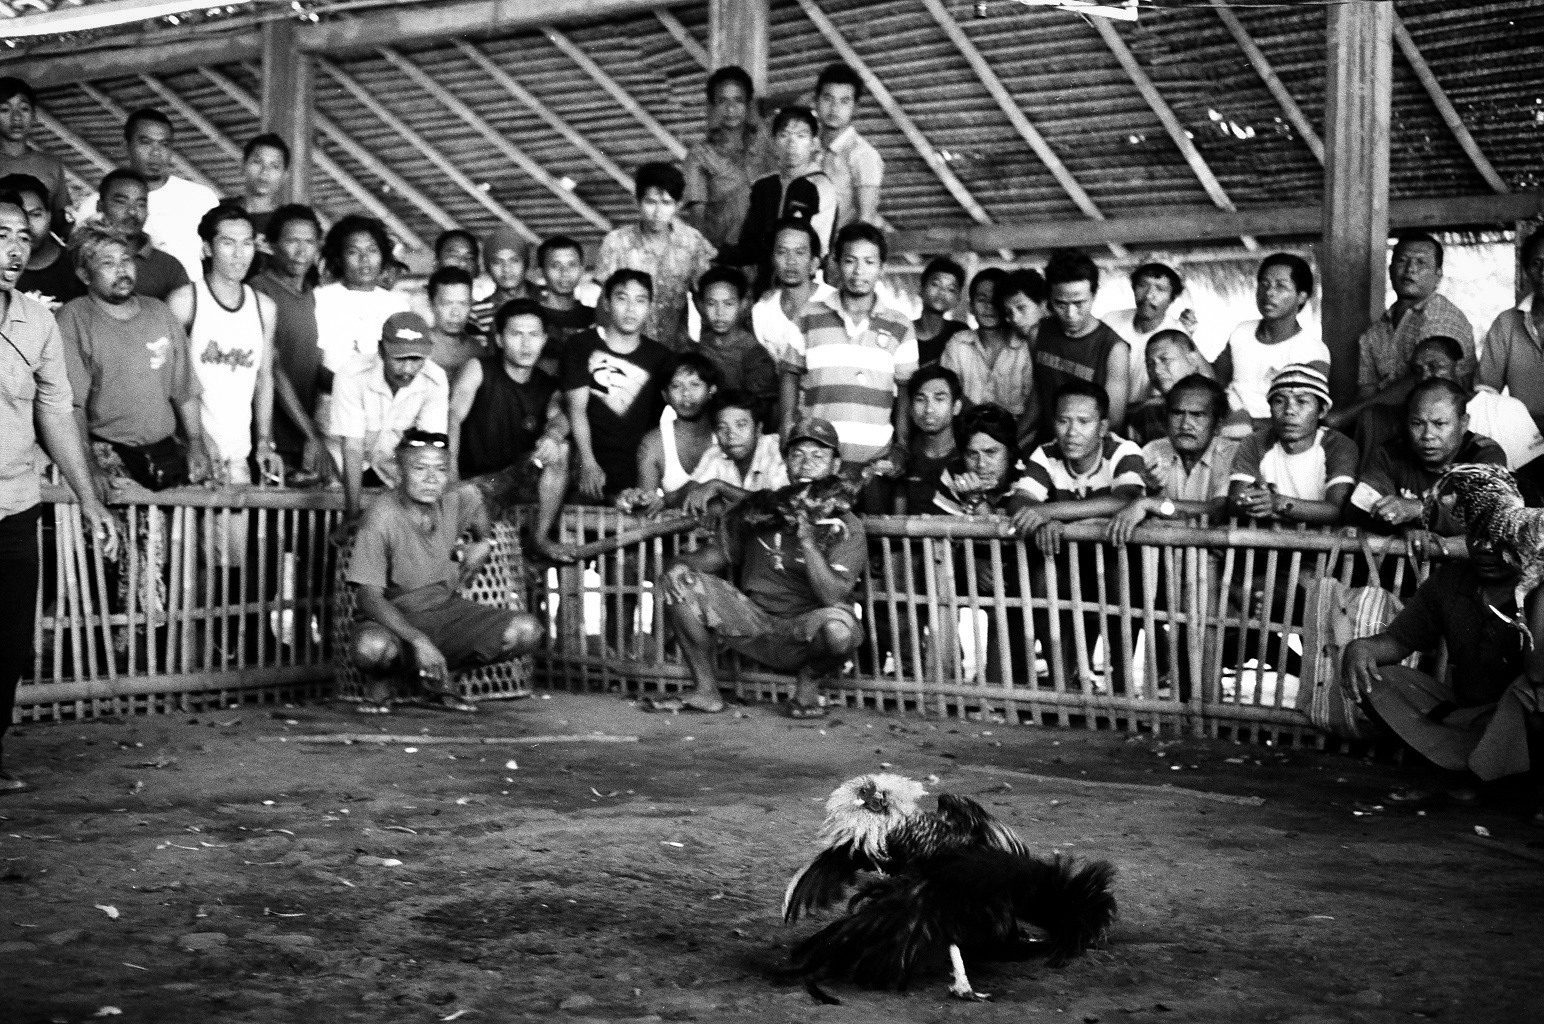 Amed, Bali, Indonesia. 2012.  Once the birds begin to fight the men watch intently and cheer for their fighter to win.